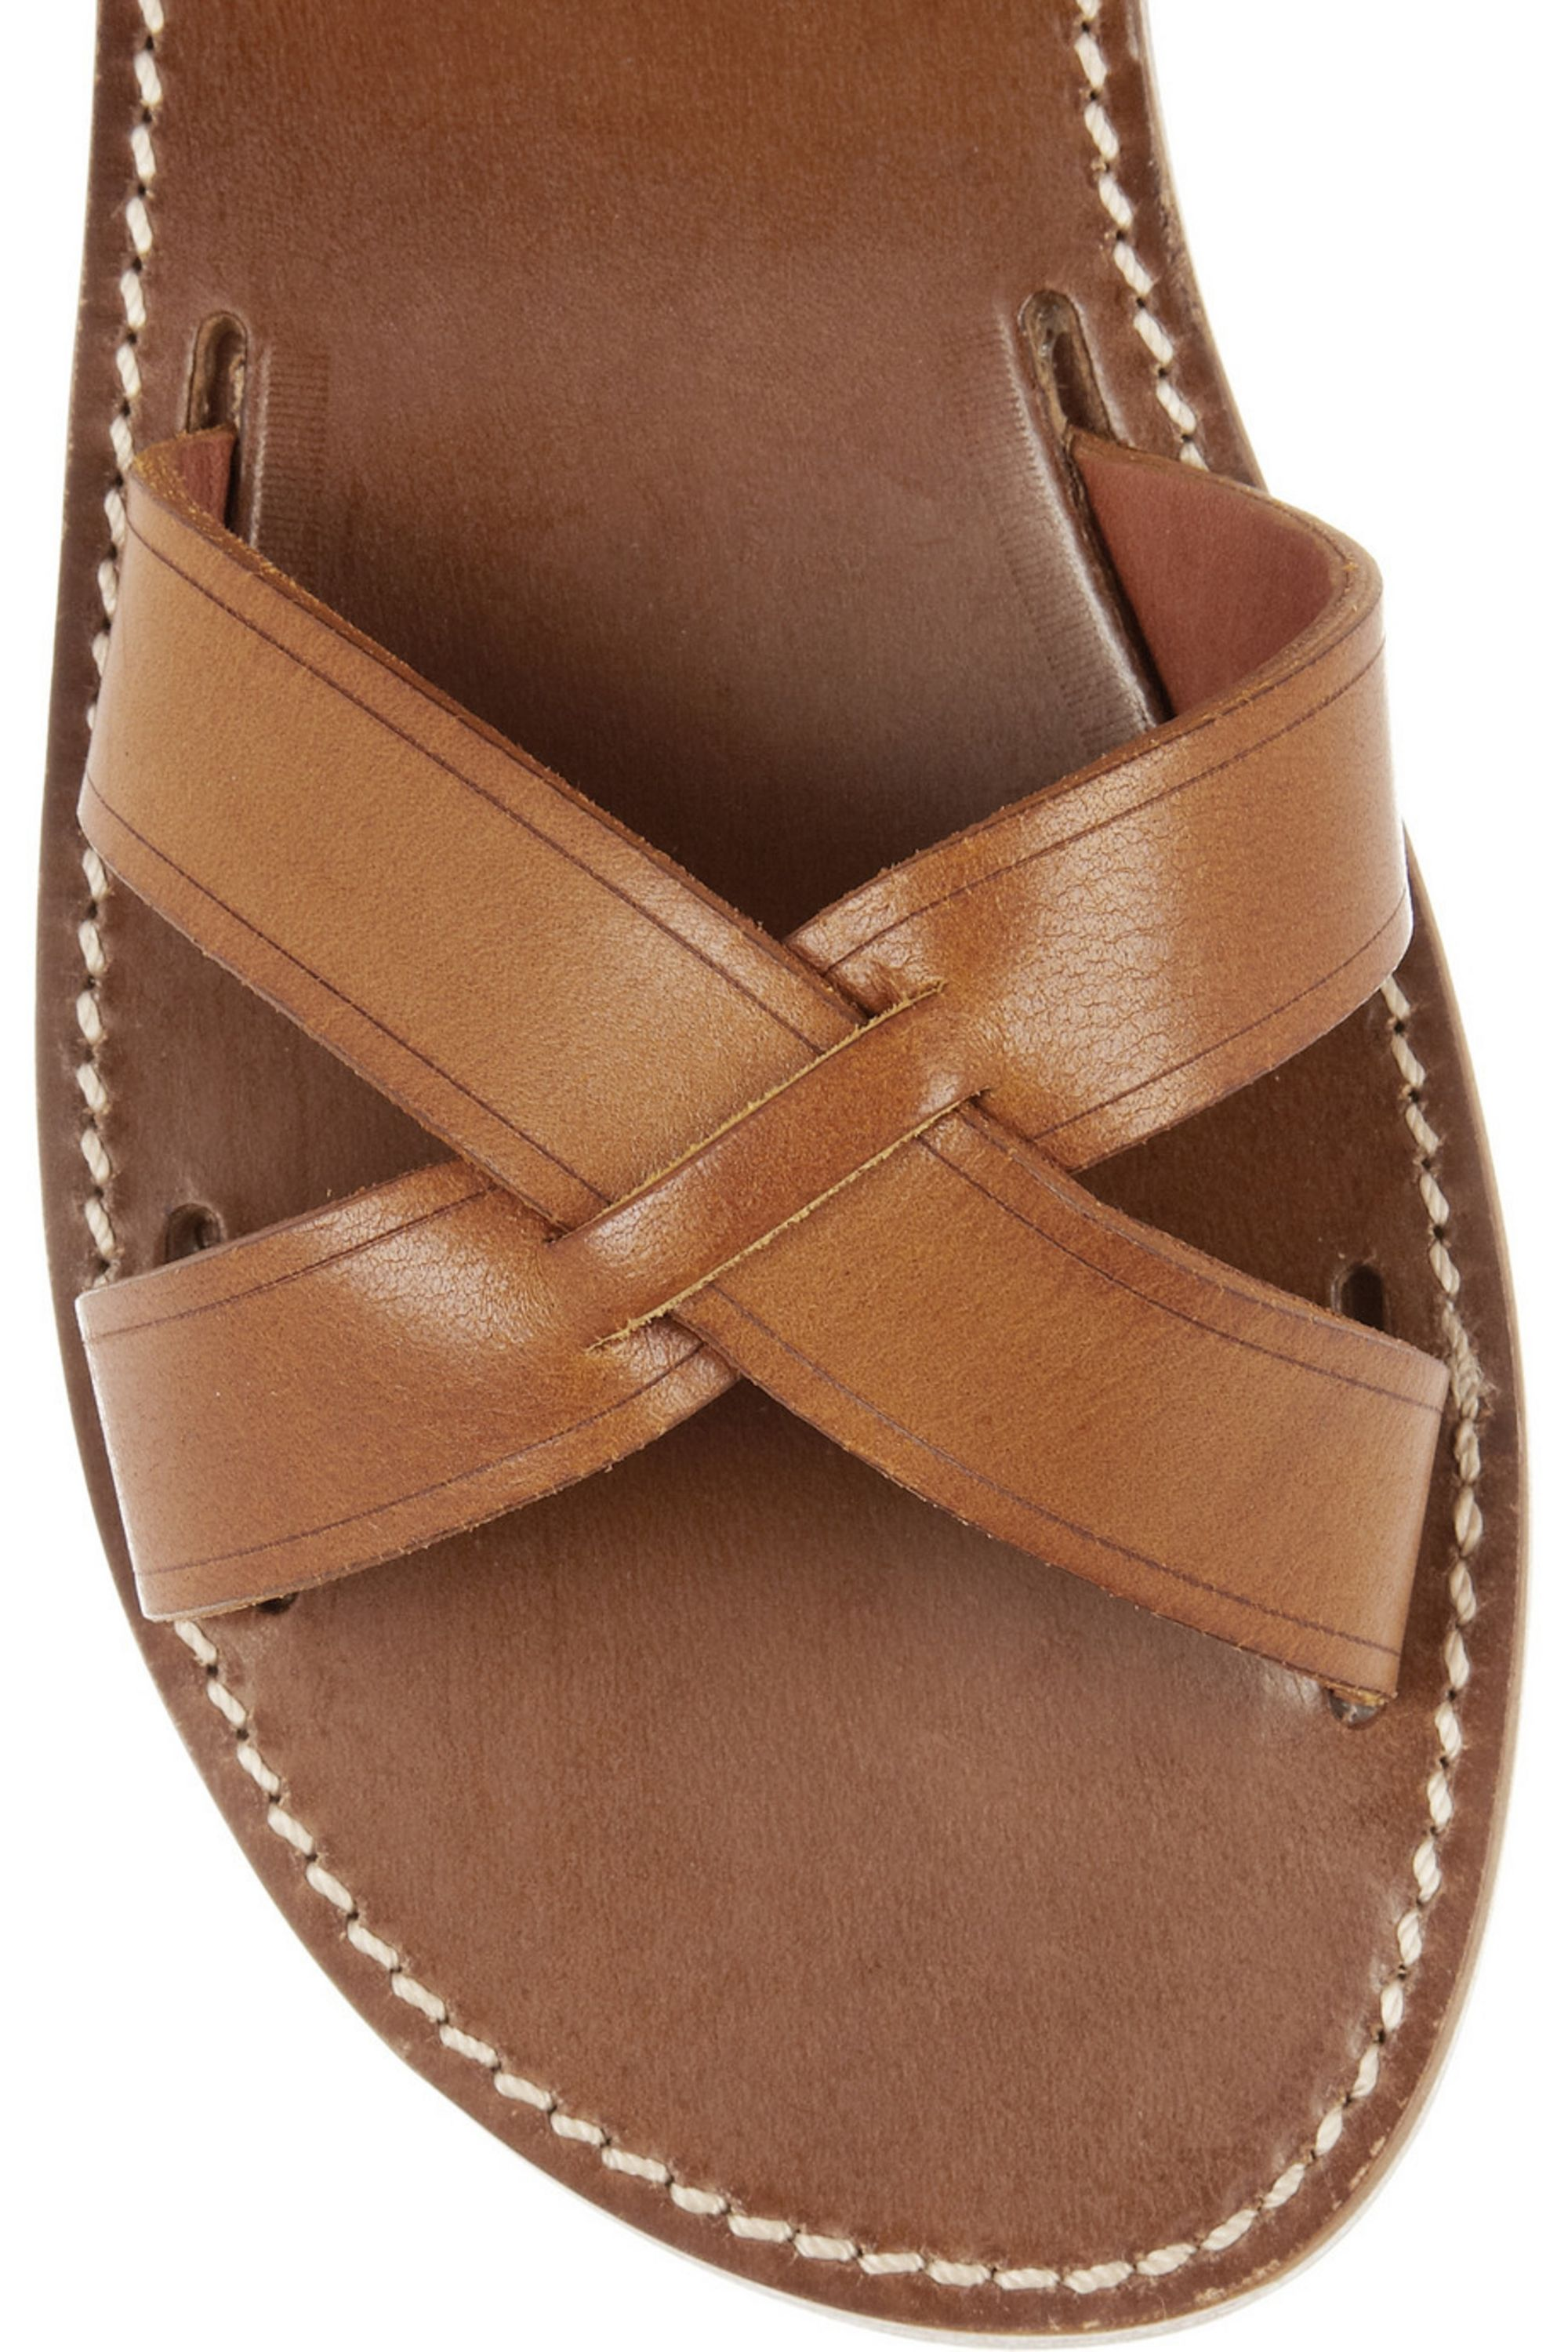 Isabel Marant Merry leather sandals